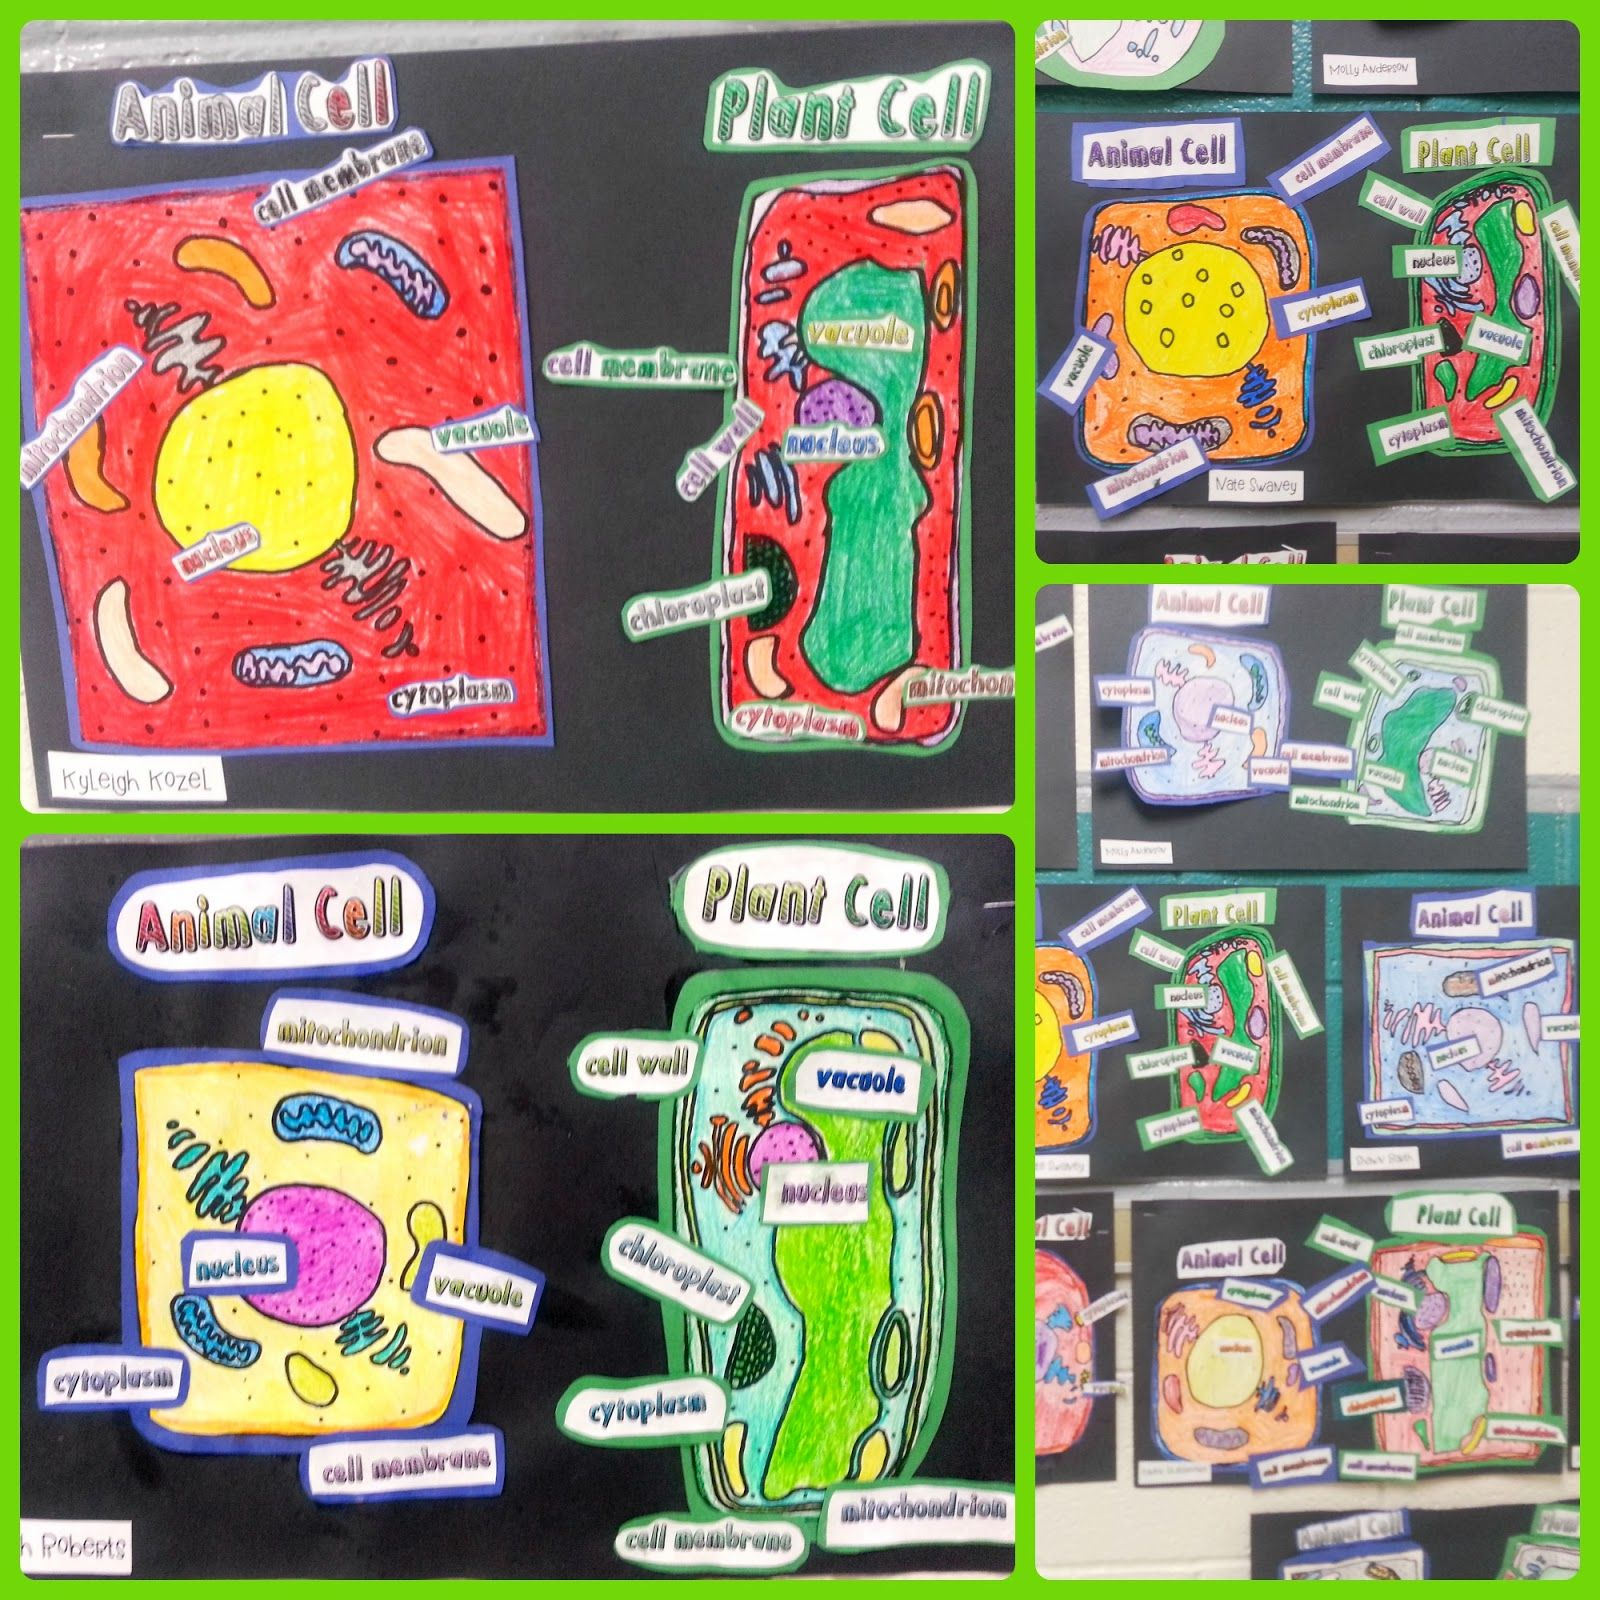 Plant and animal cell activities...plus a classroom full